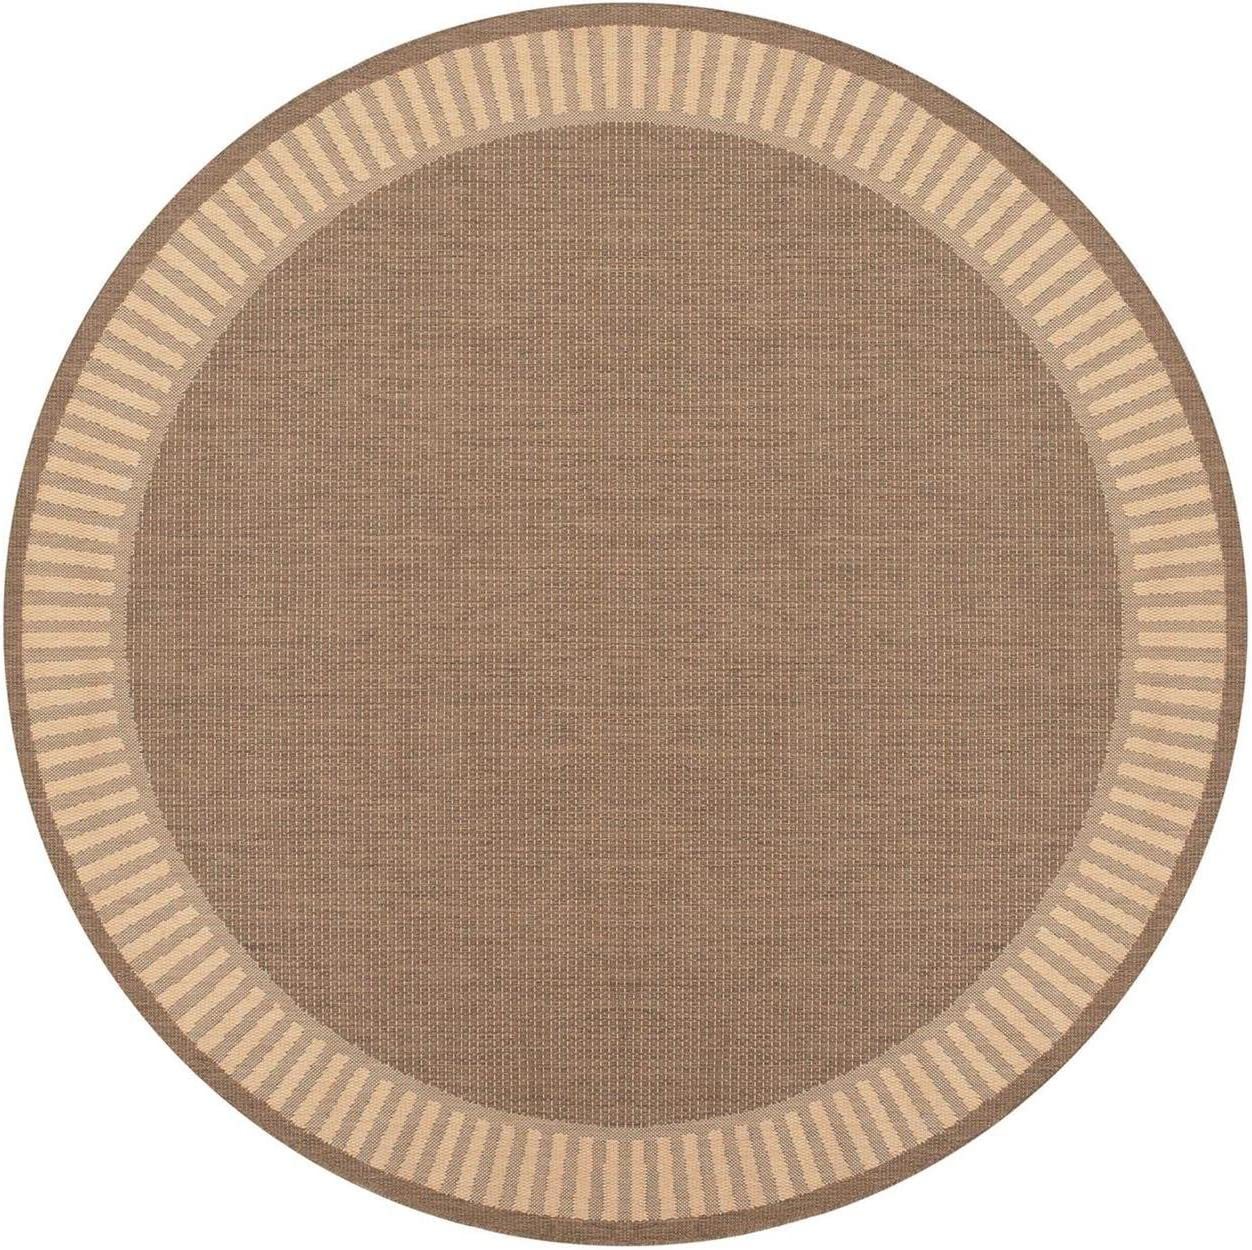 Couristan Recife 1681 1500 Wicker Rug, 7-Feet 6-Inch by 10-Feet 9-Inch, Stitch Cocoa Natural